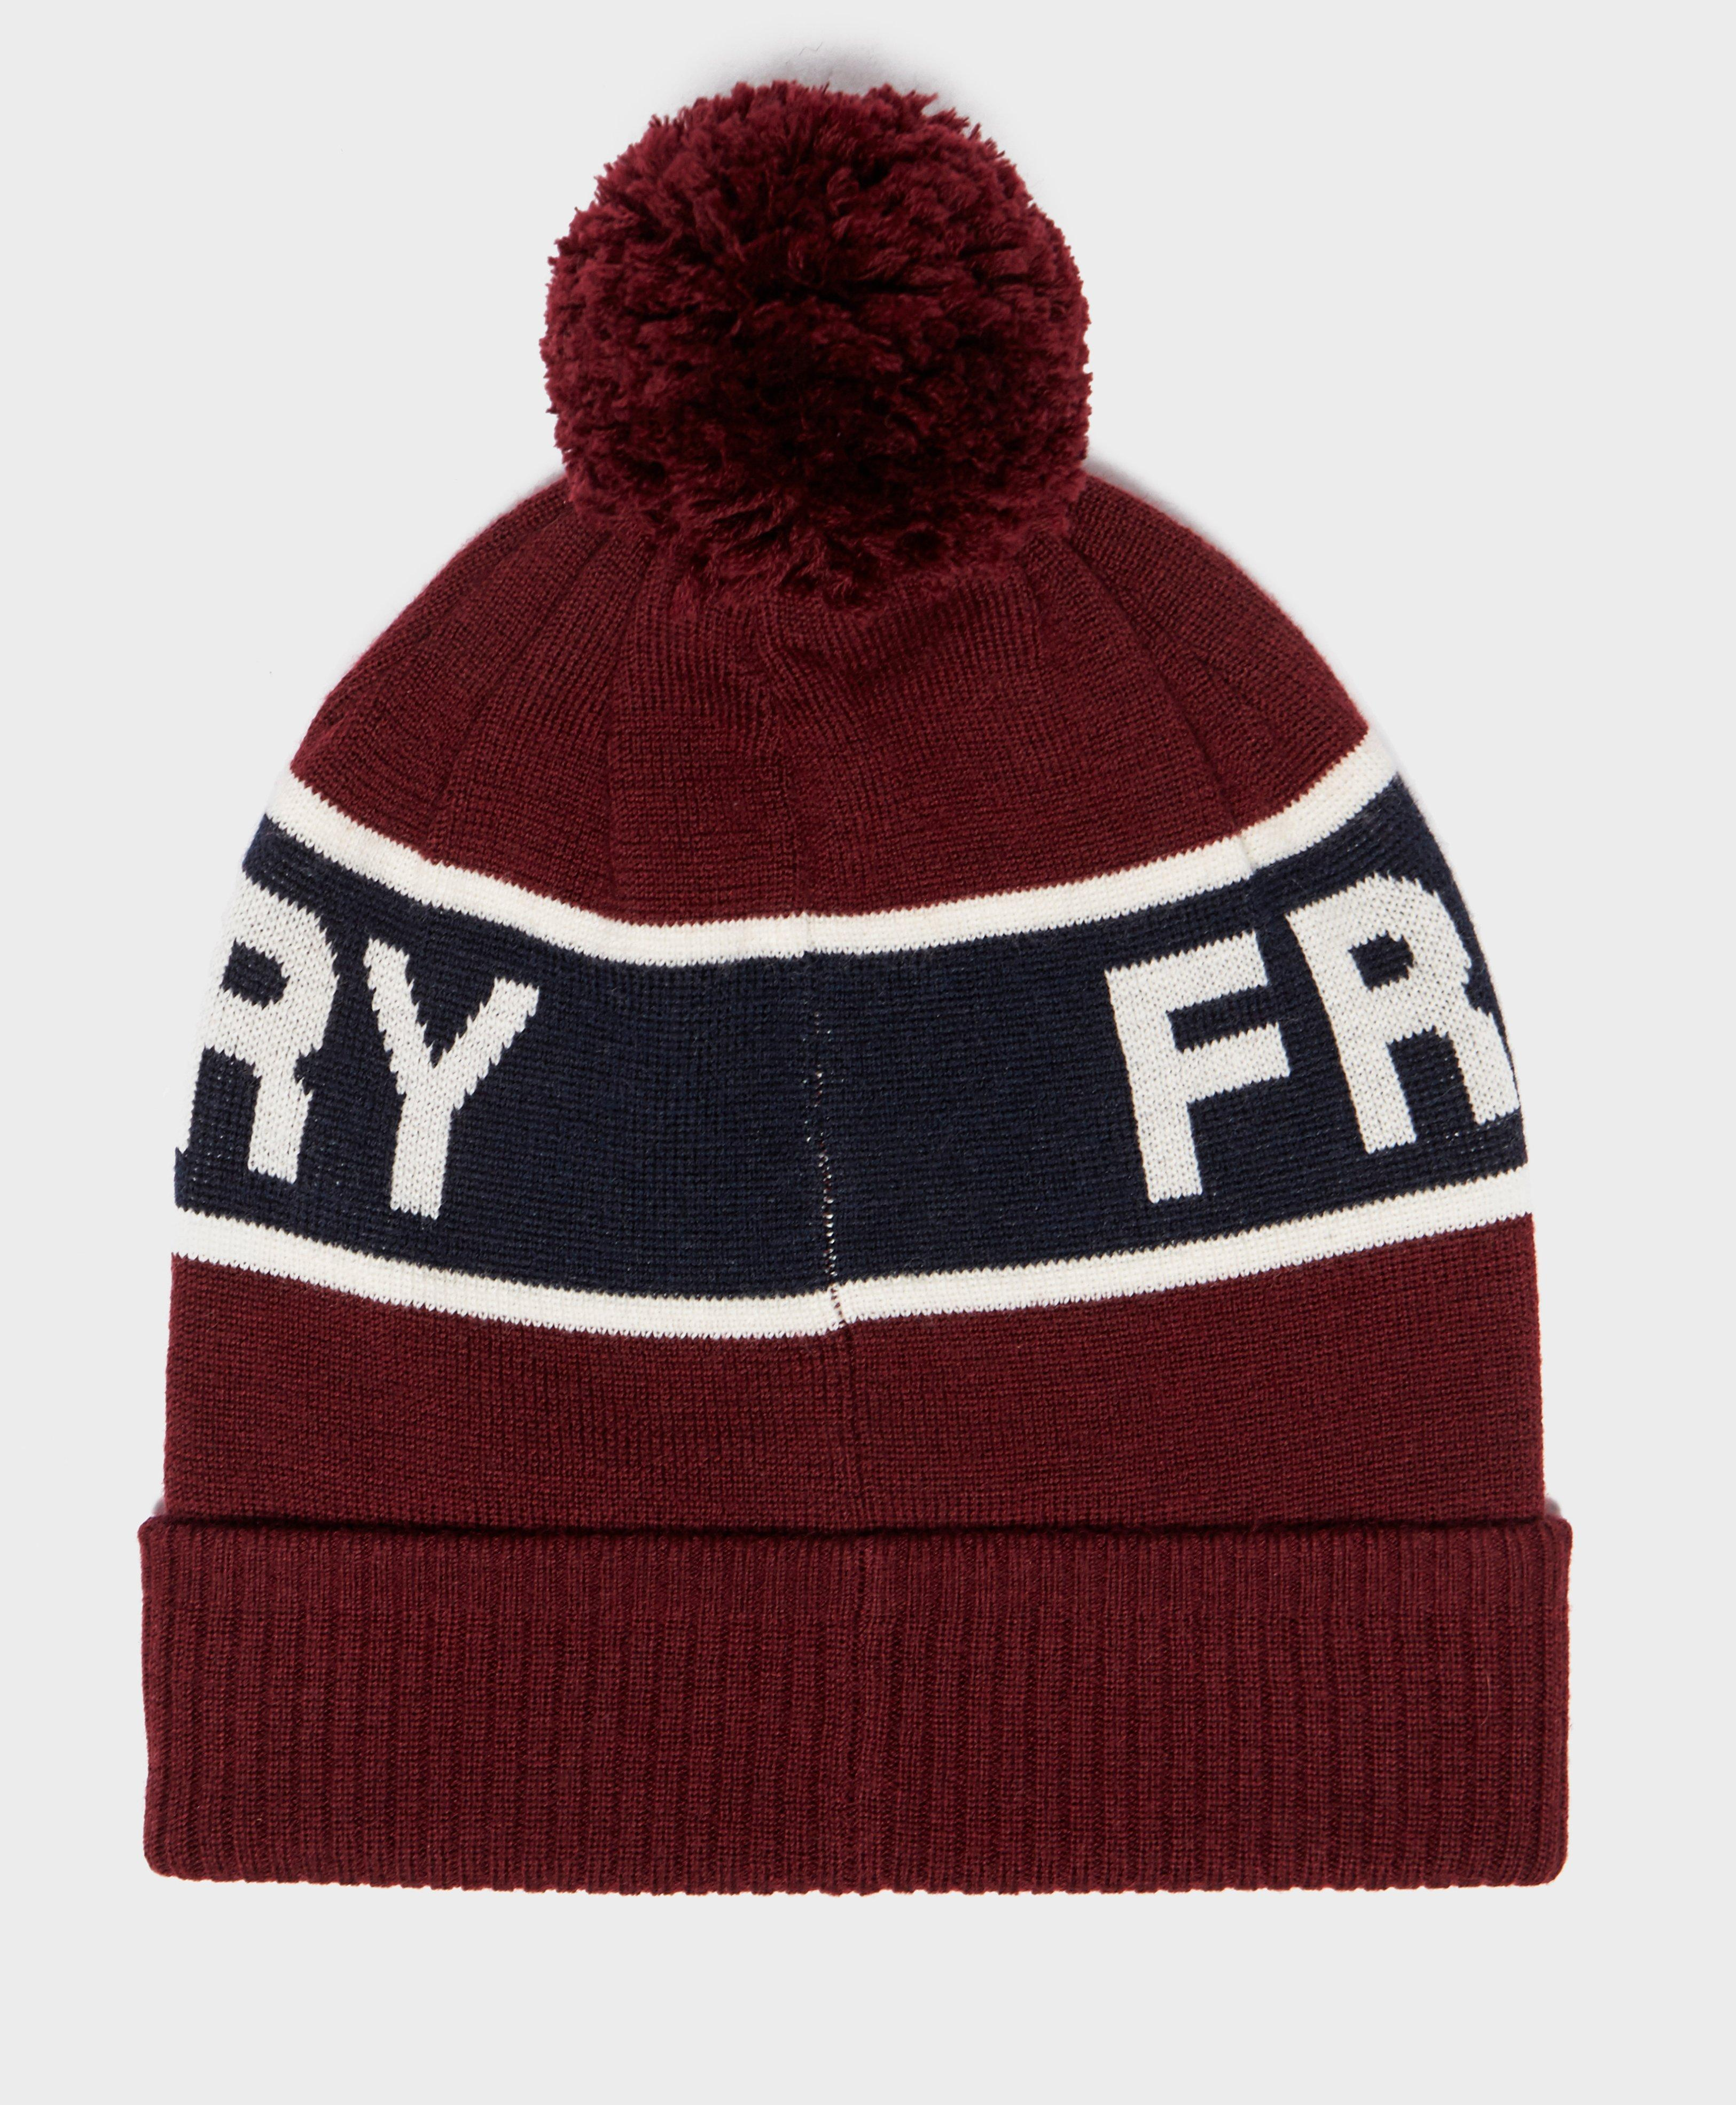 58dc6e64671 Fred Perry Bobble Beanie Hat in Red for Men - Lyst